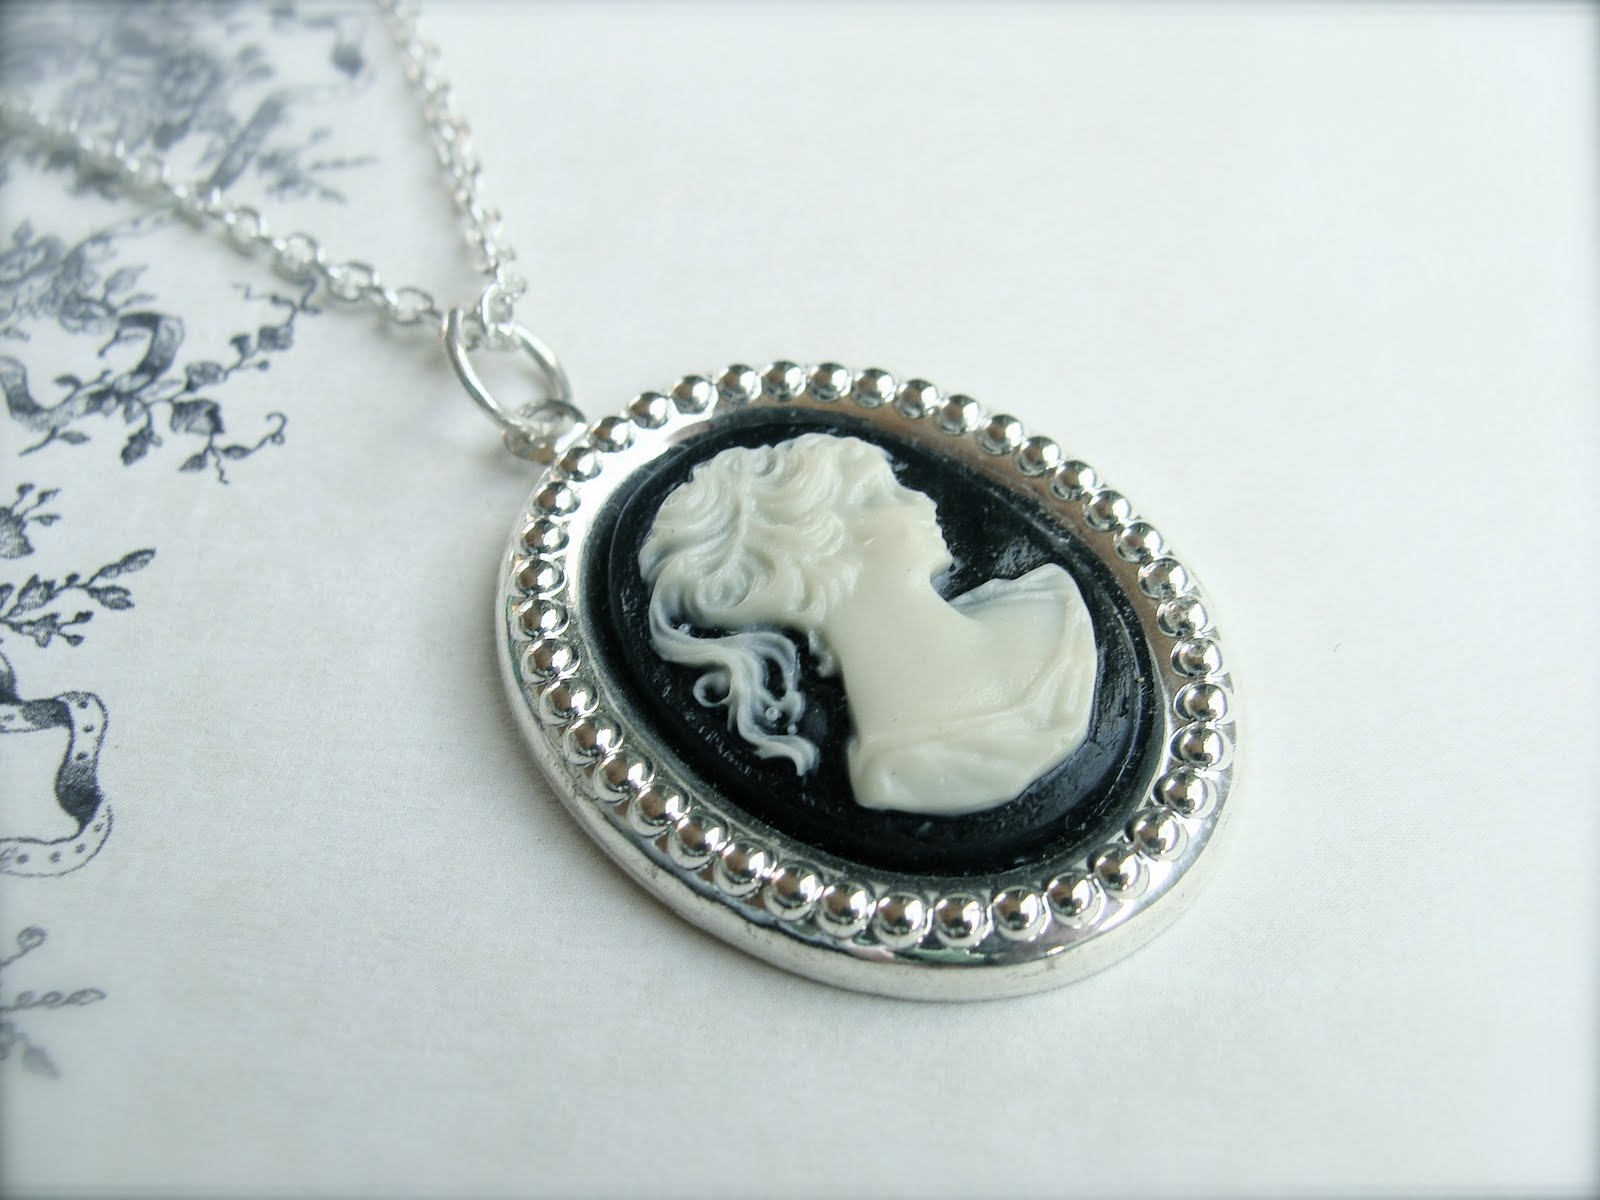 Sweet Amp Simple Jewelry Design New Cameo Designs